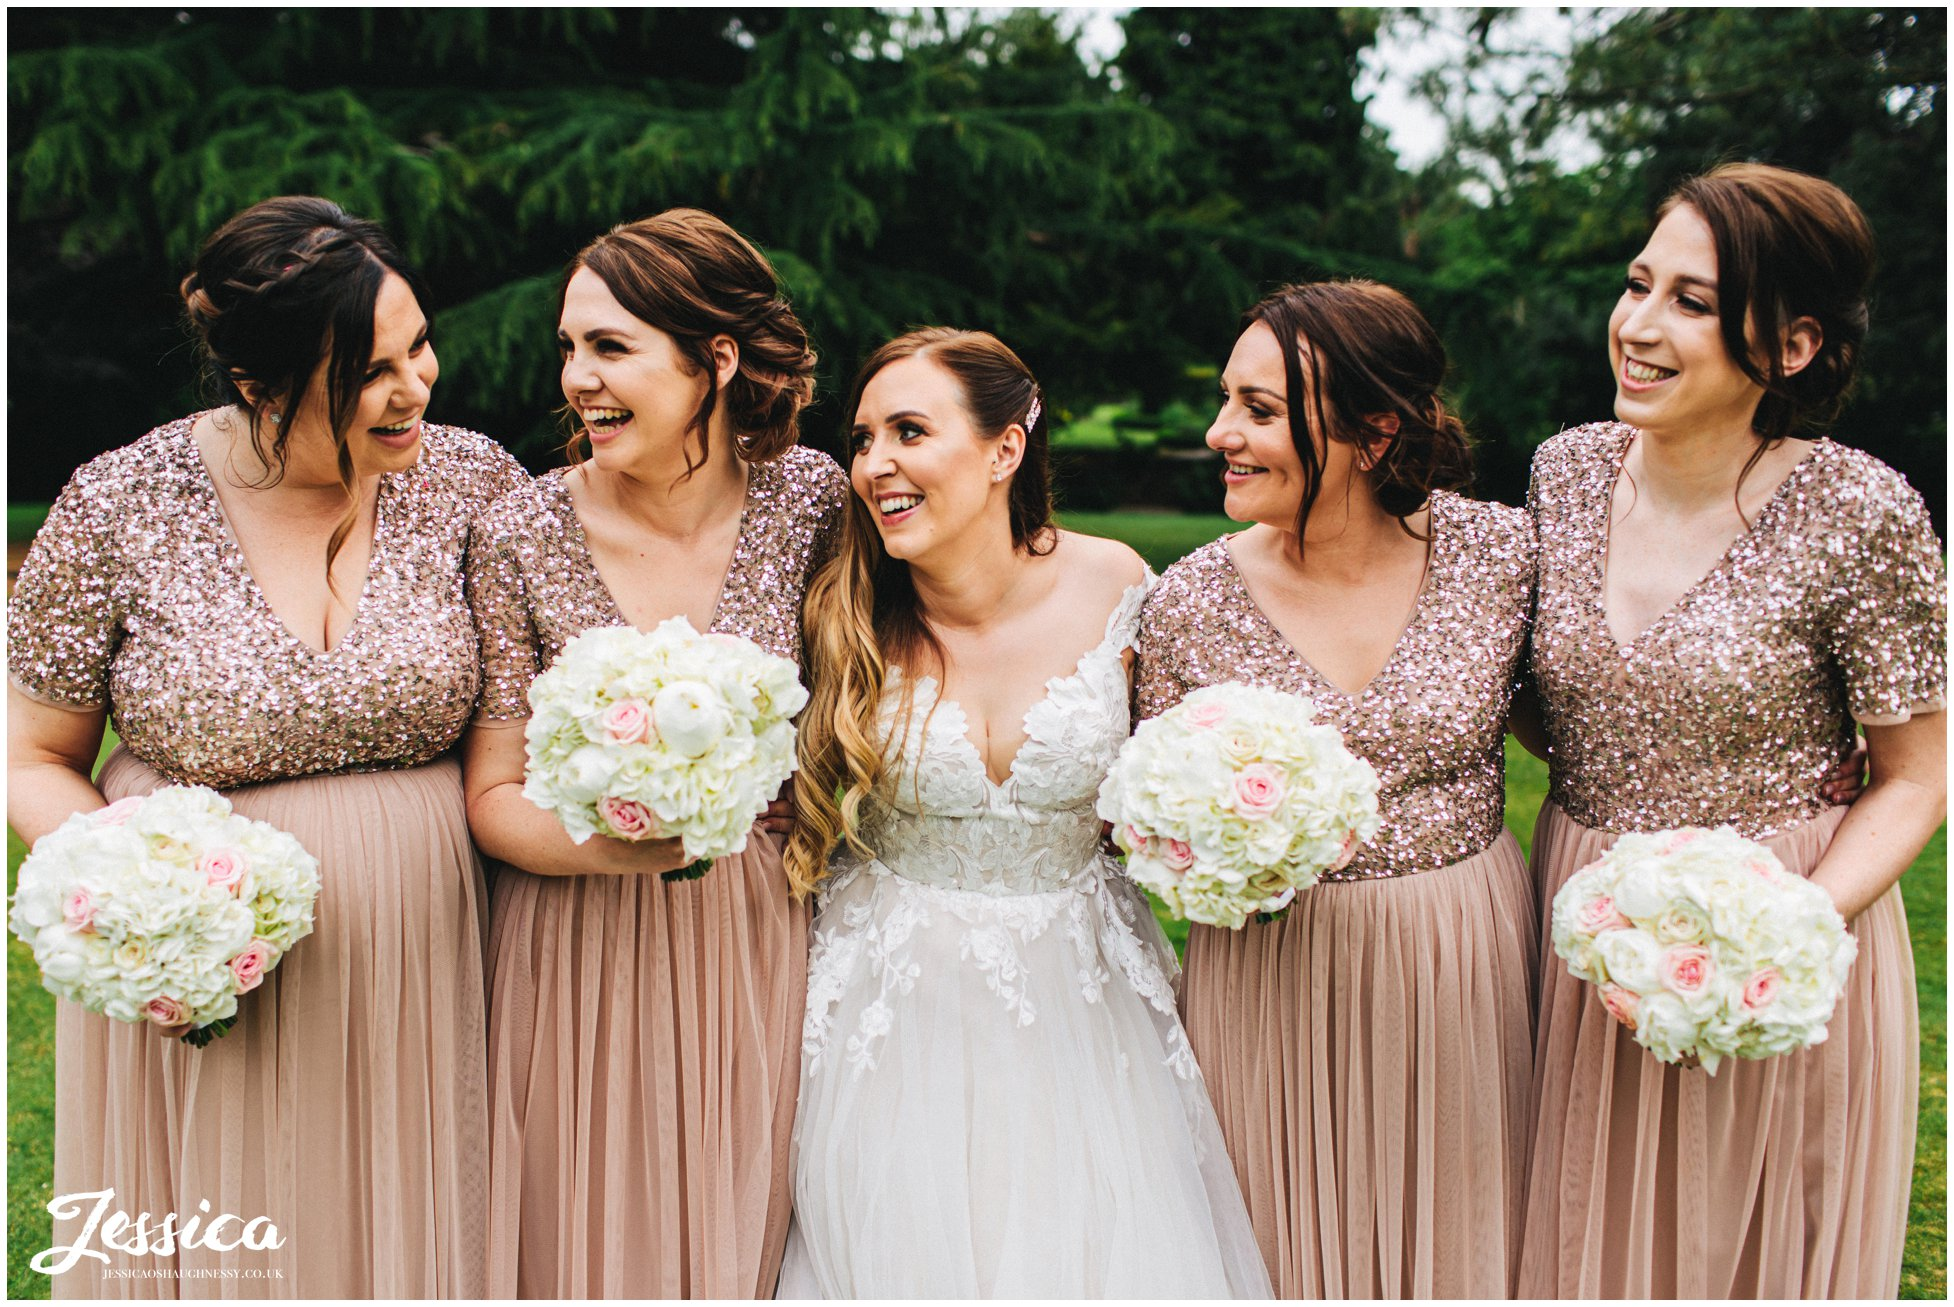 bride & bridesmaids laugh together in the venue gardens